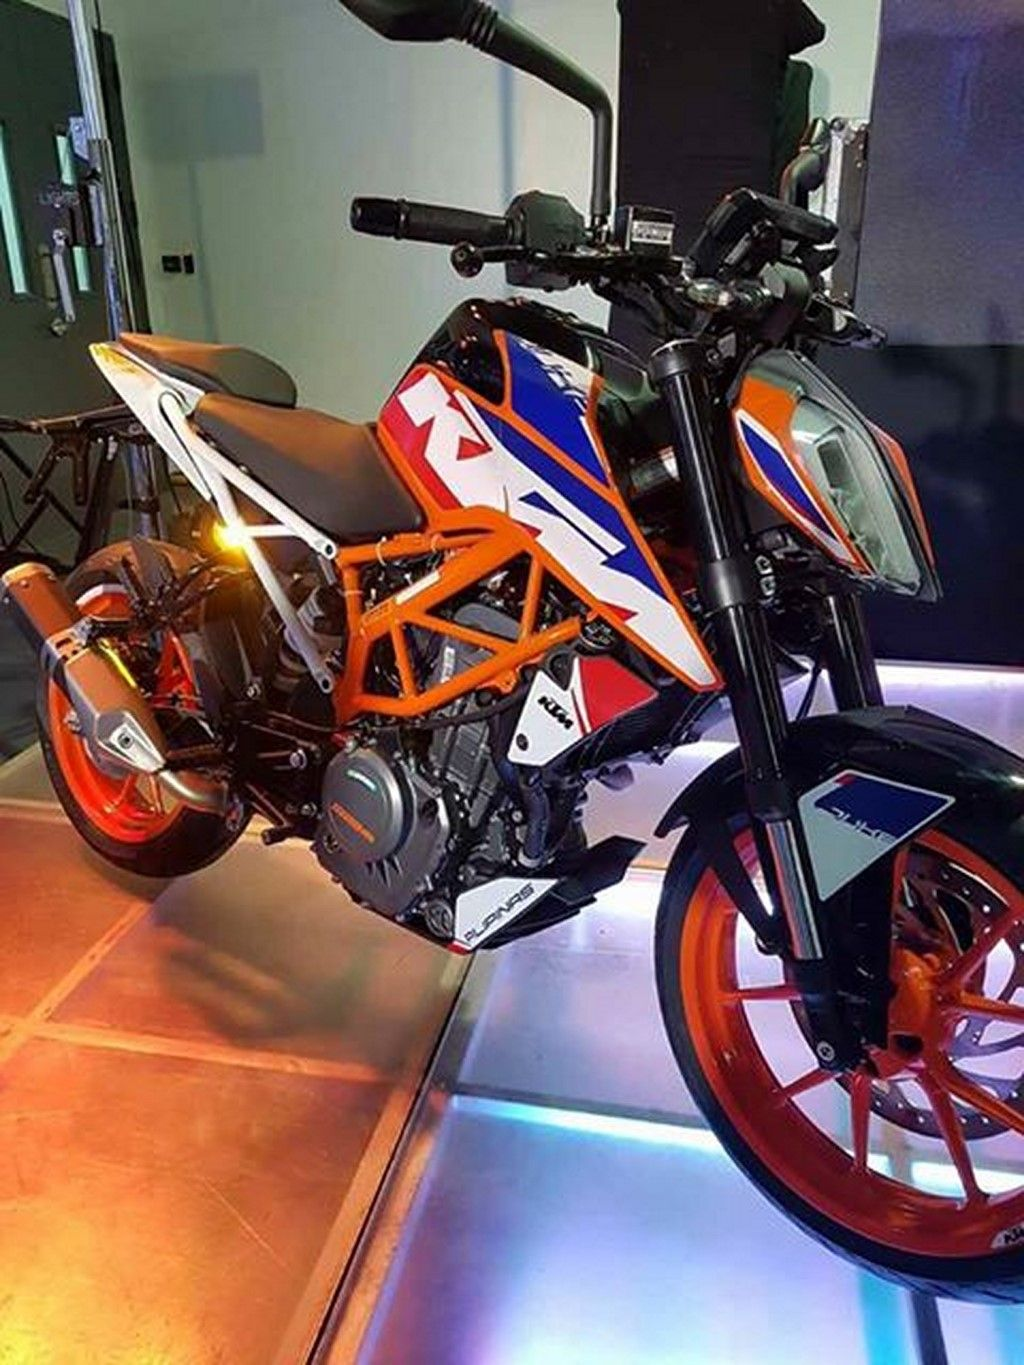 2017 Ktm Duke 390 Special Edition Launched In Philippines Ktm